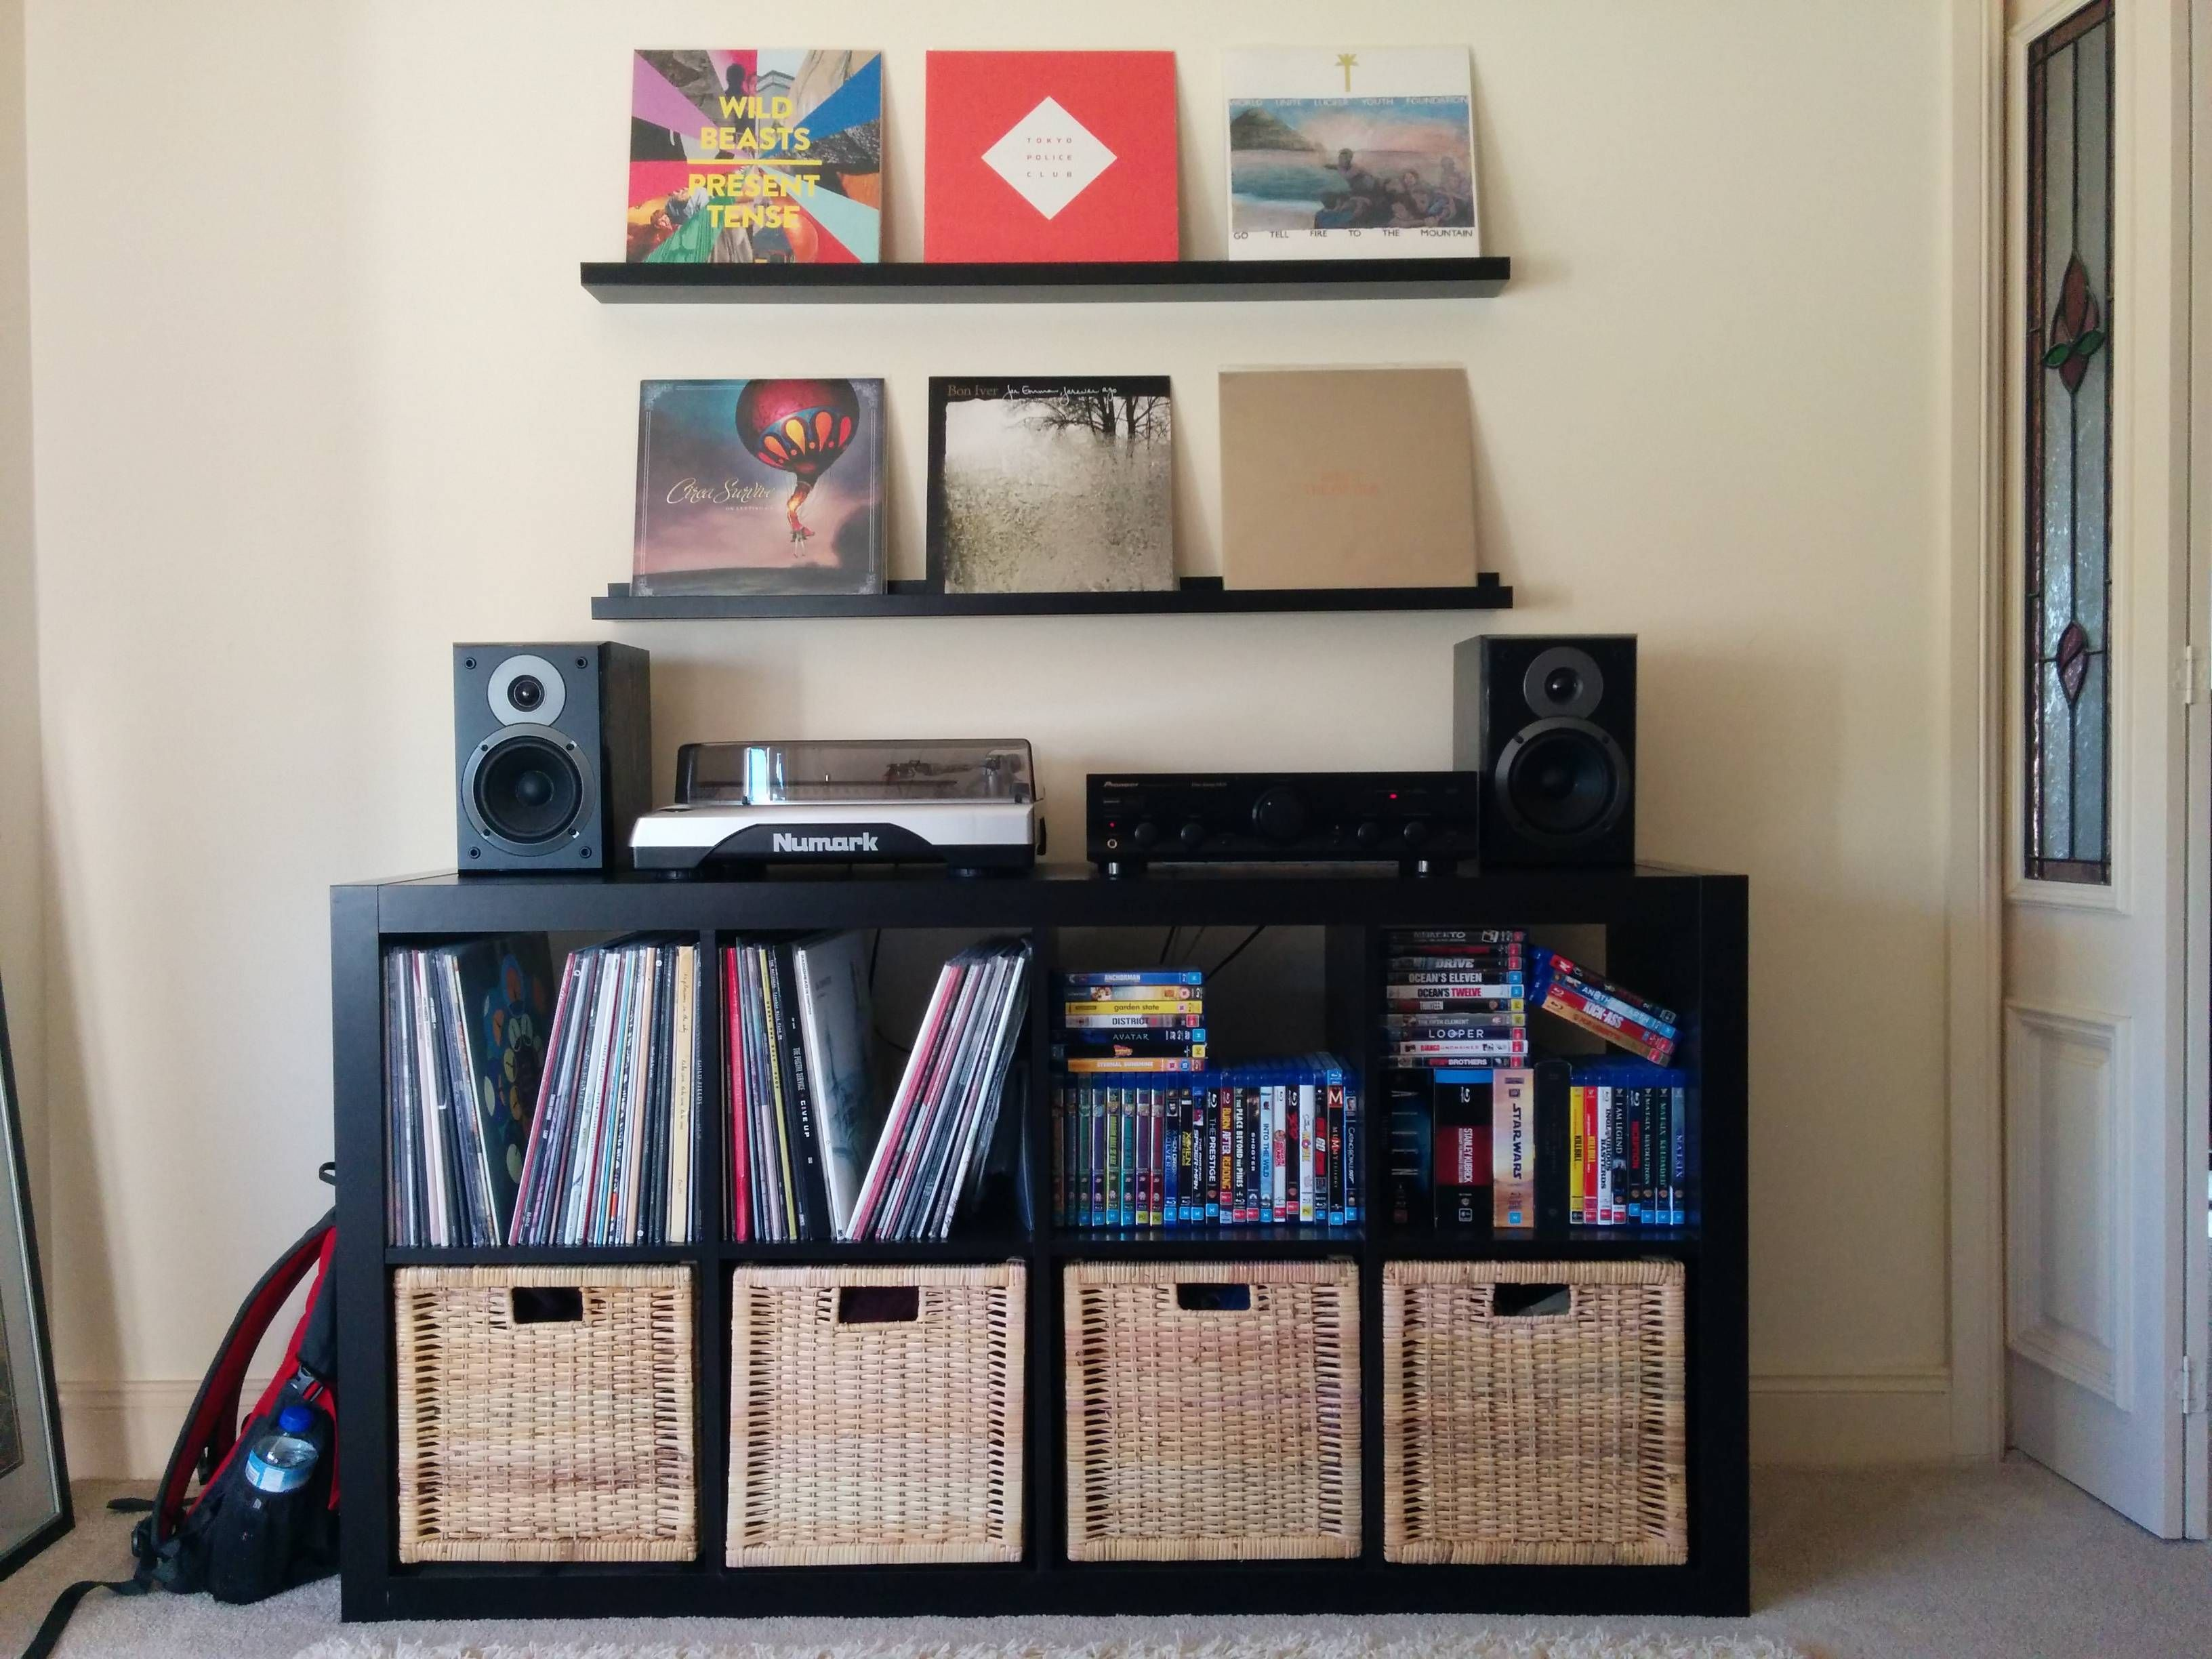 Vinyl Record Storage Display Like The Idea Of Having A